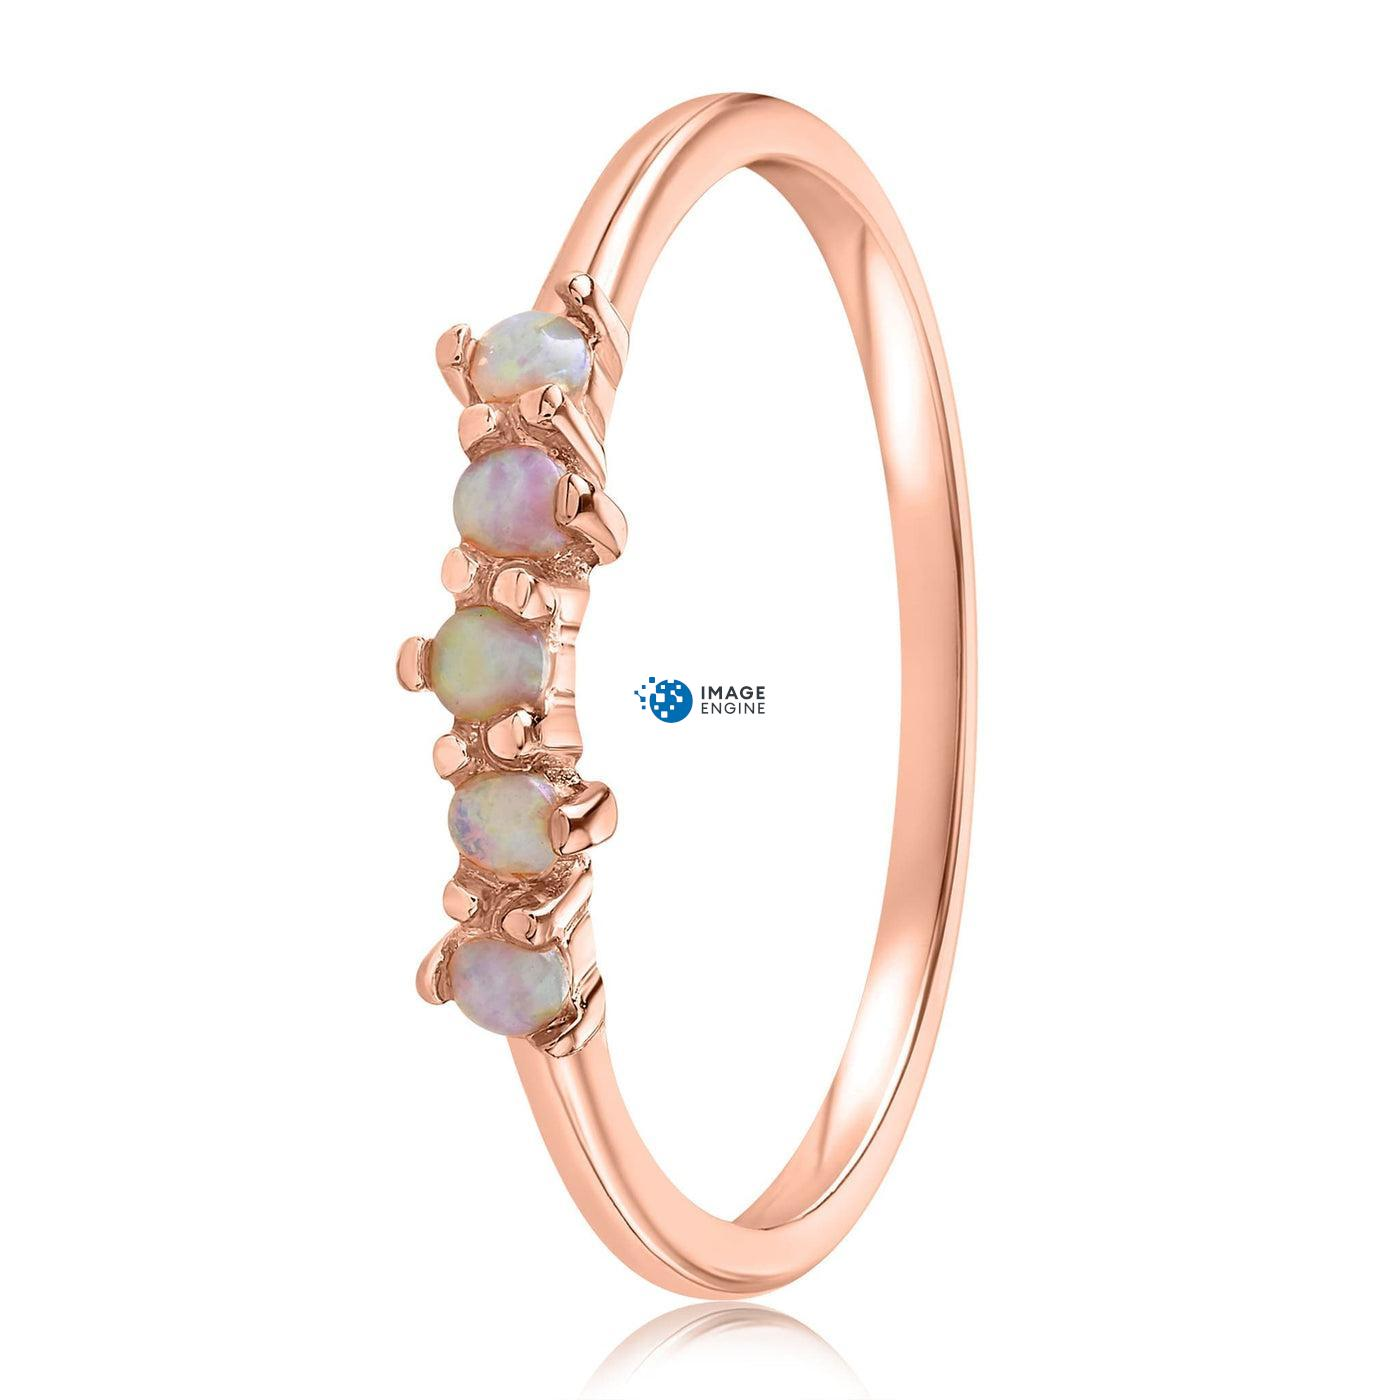 Samantha Simple Dots 5 Opal Ring - Side View - 18K Rose Gold Vermeil